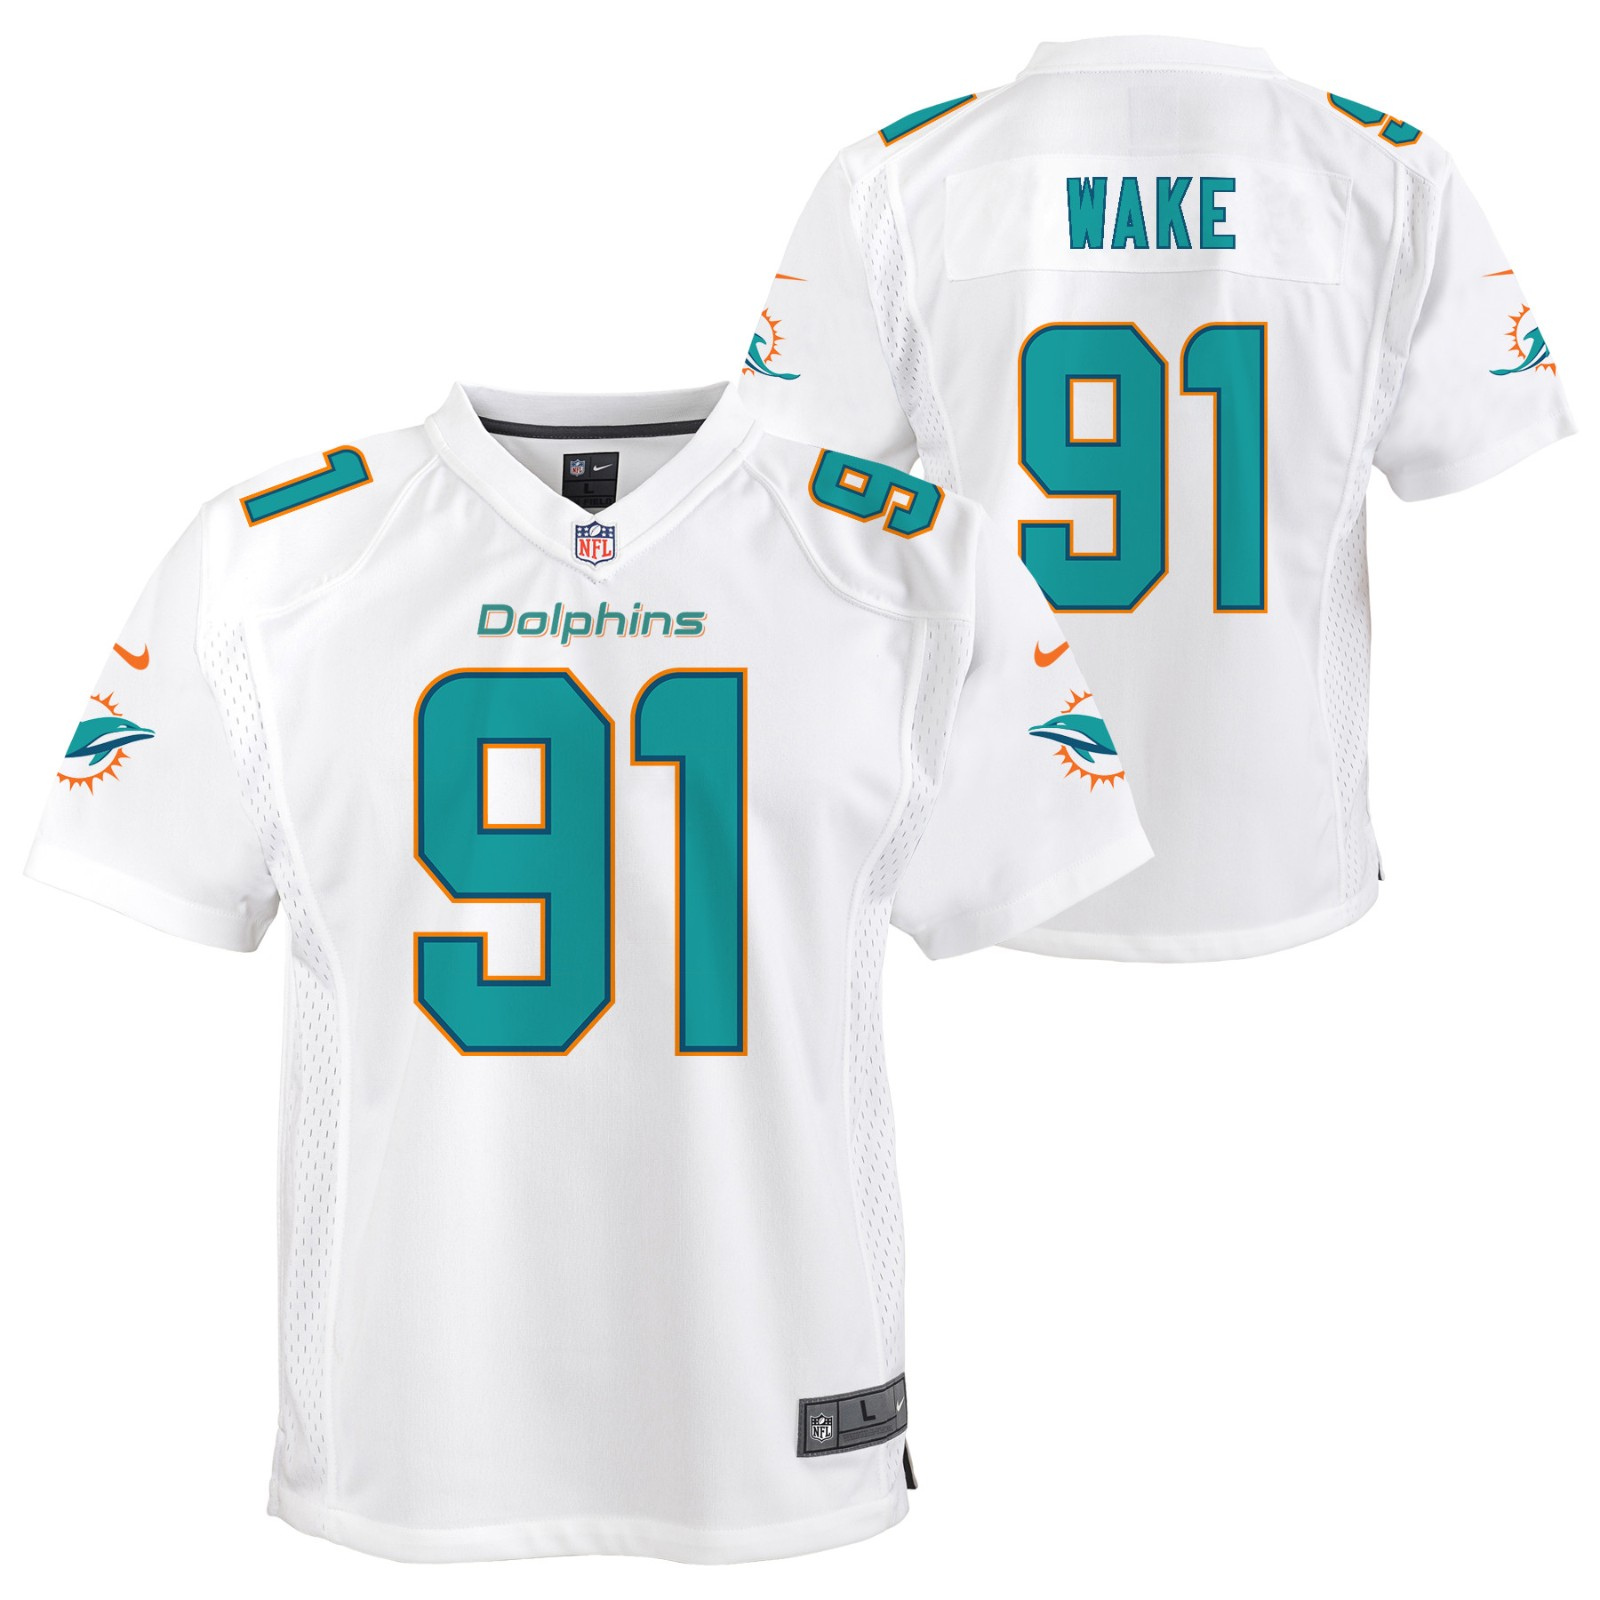 new style 82dce 0a577 Details about Cameron Wake Miami Dolphins NFL Nike Youth White Game Jersey